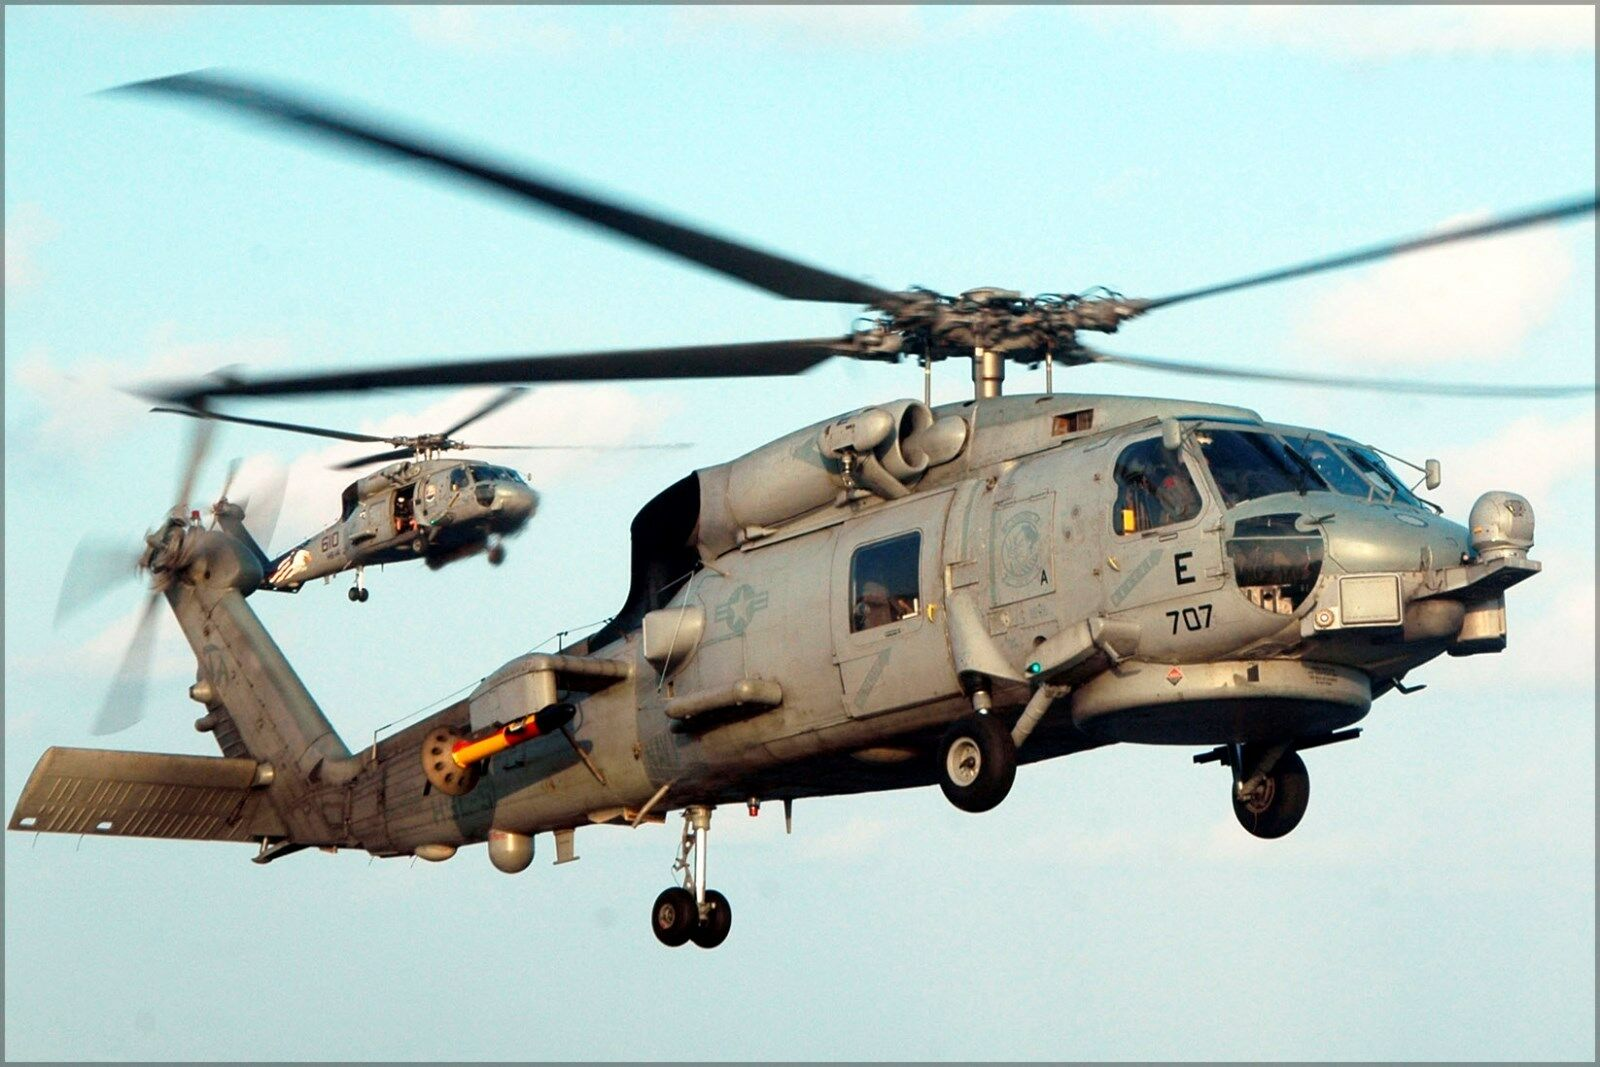 Poster, Molte Misure; Sh-60b Seahawk Helicopter e Sh-60f Seahawk